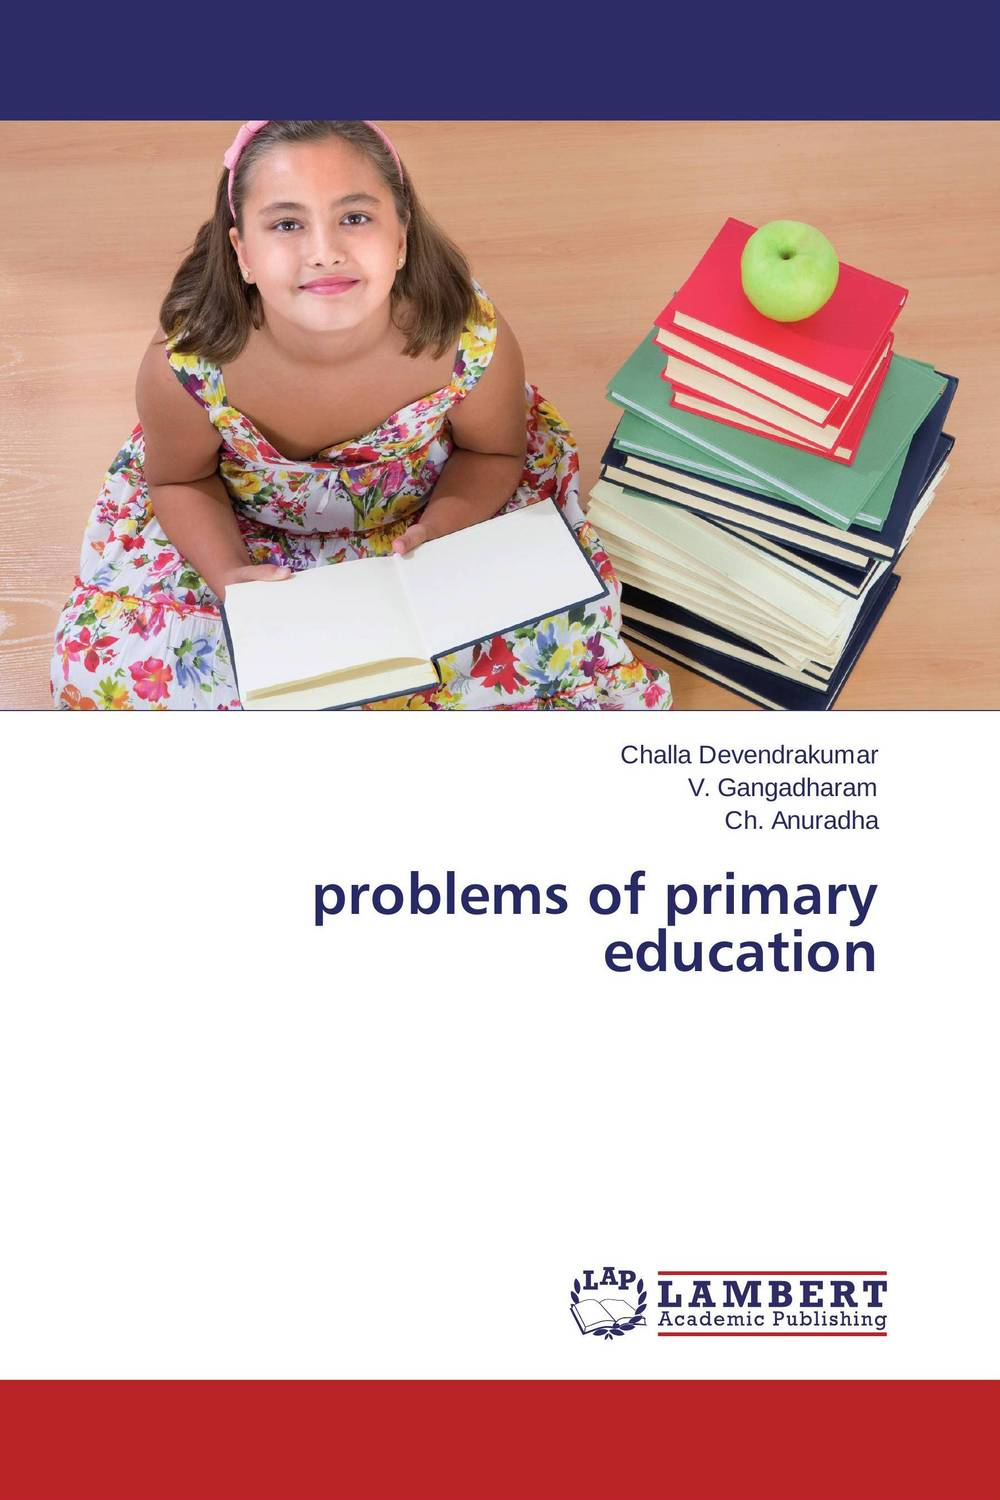 problems of primary education